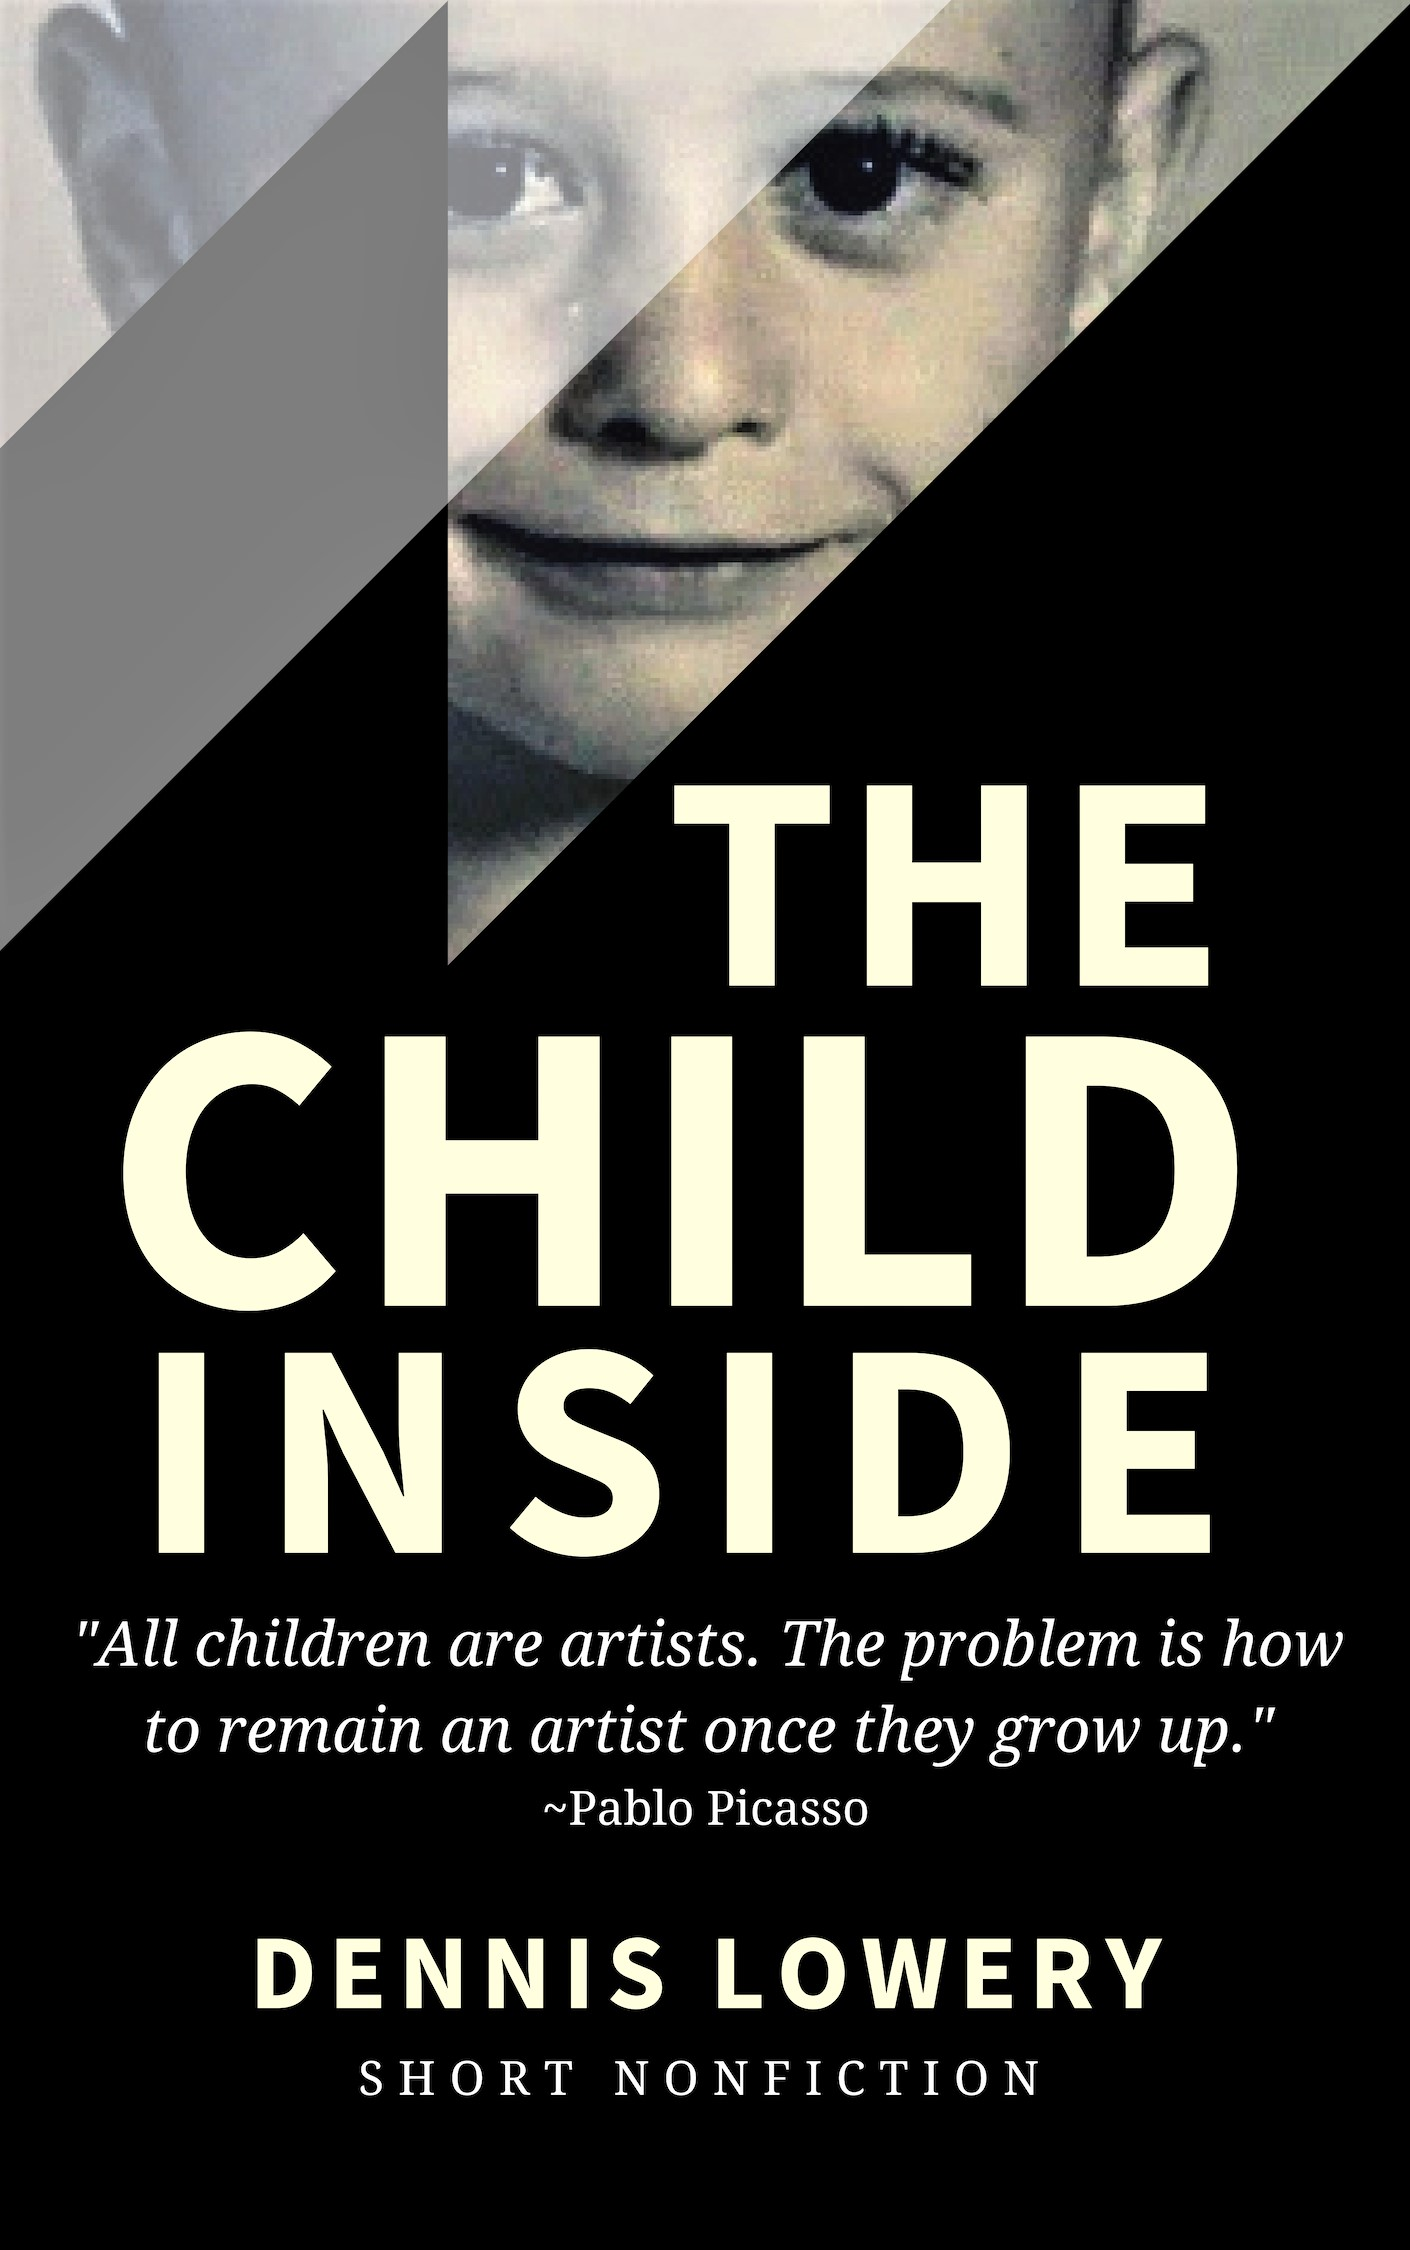 The Child Inside - Short Nonfiction by Dennis Lowery